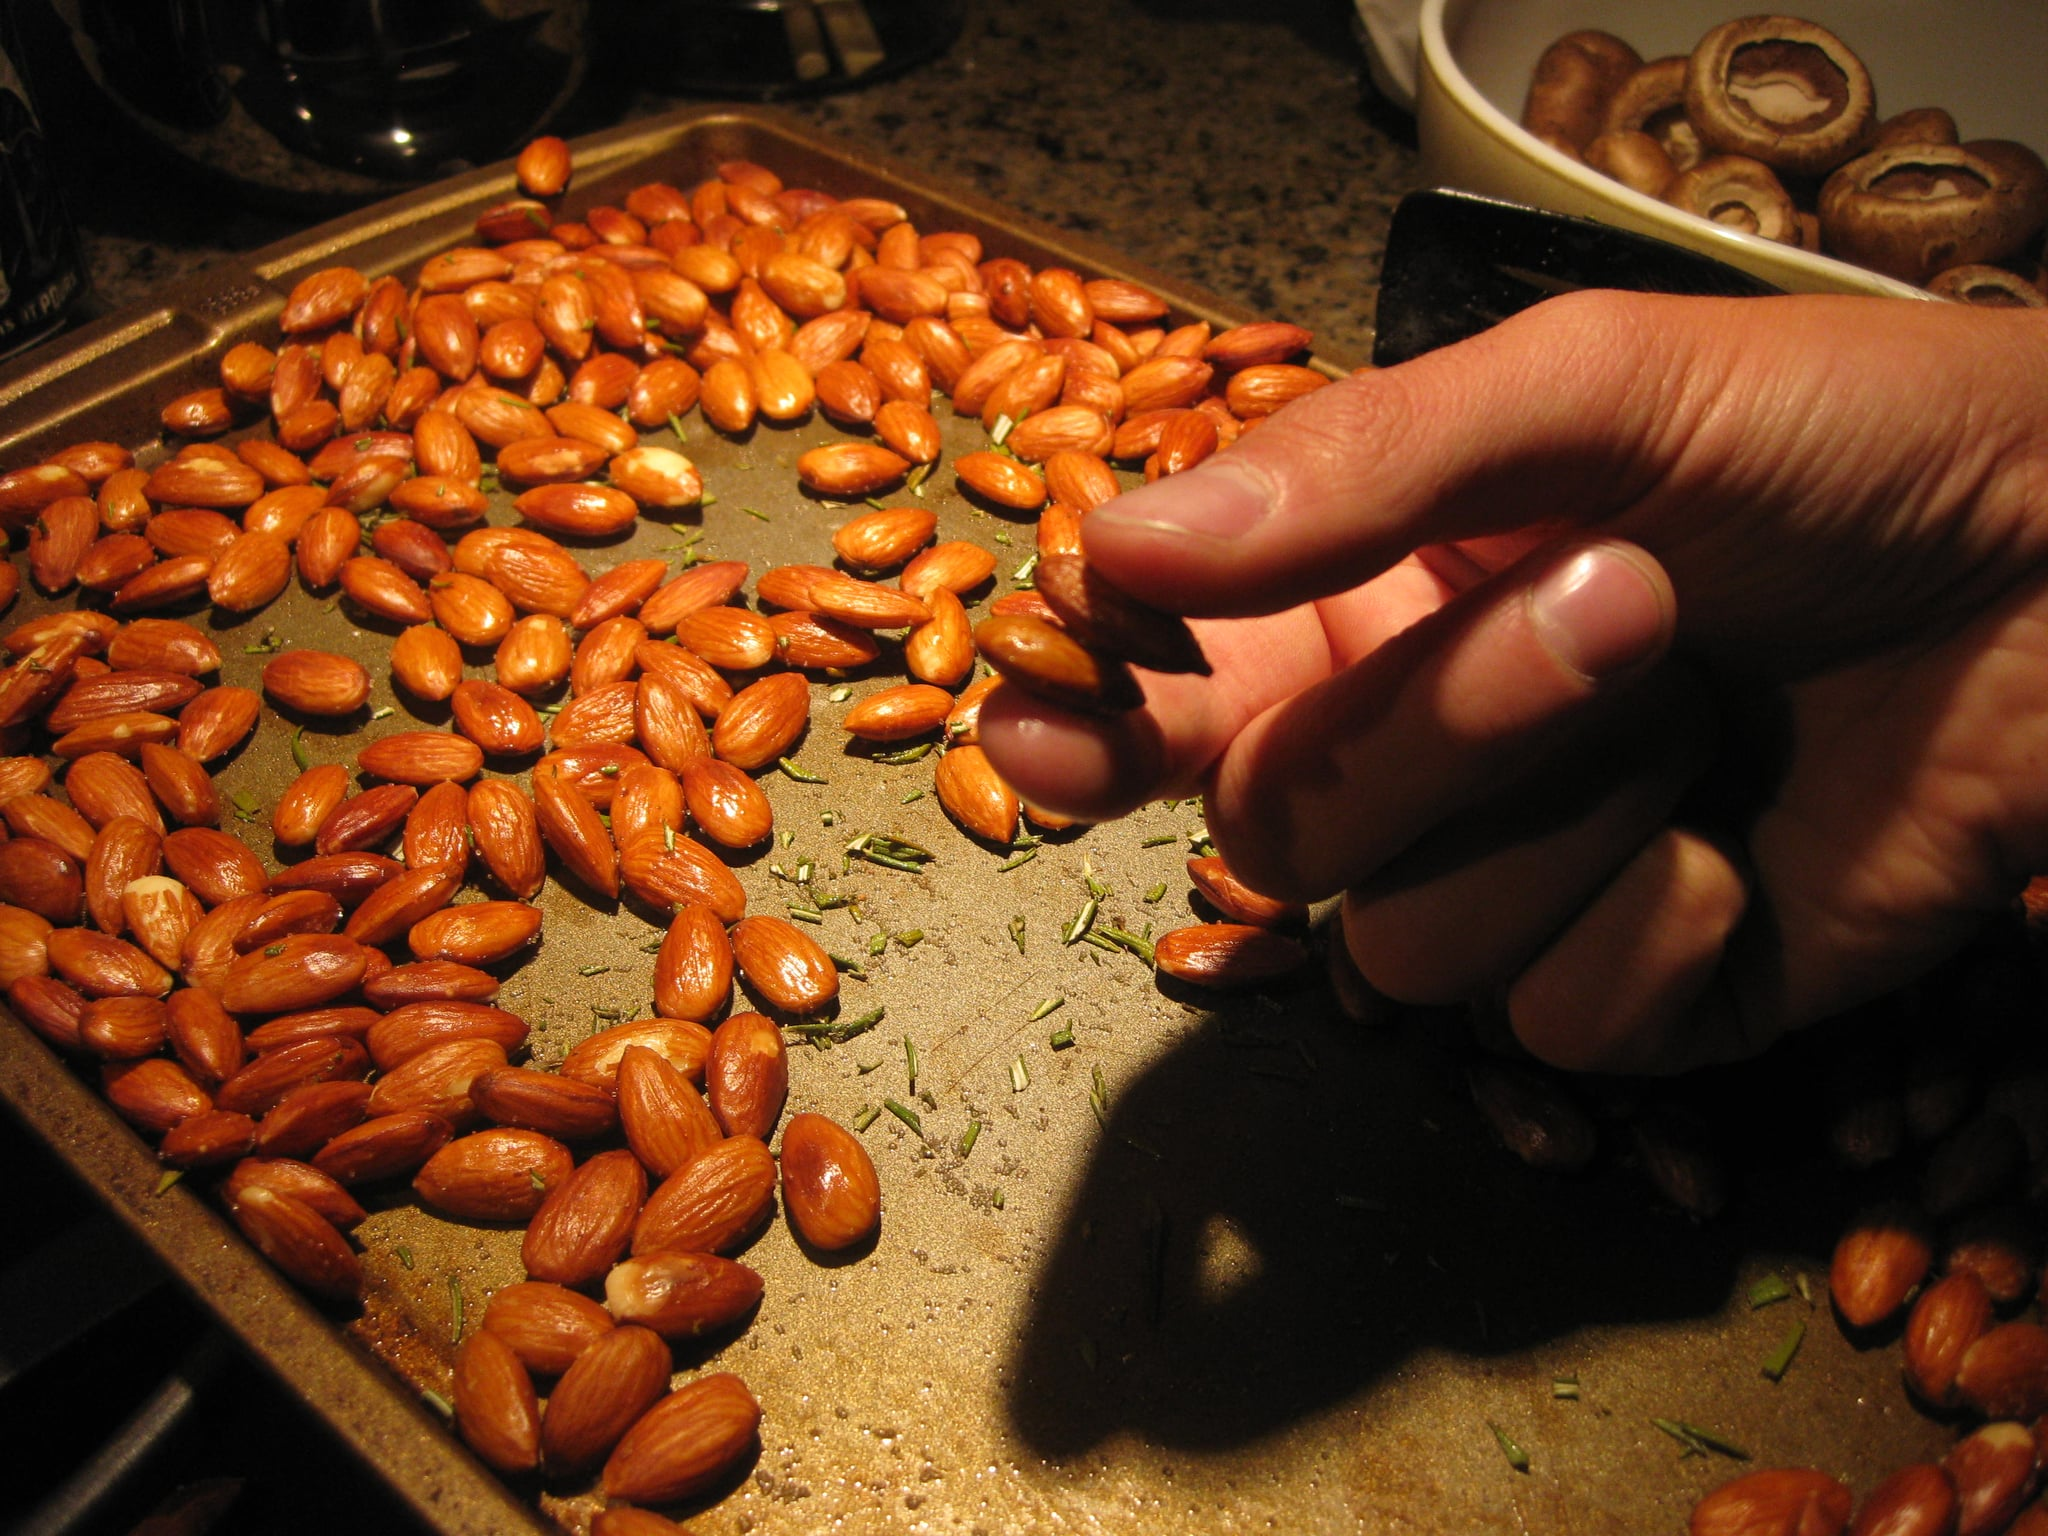 Roasted almonds were jazzed up with chopped rosemary.